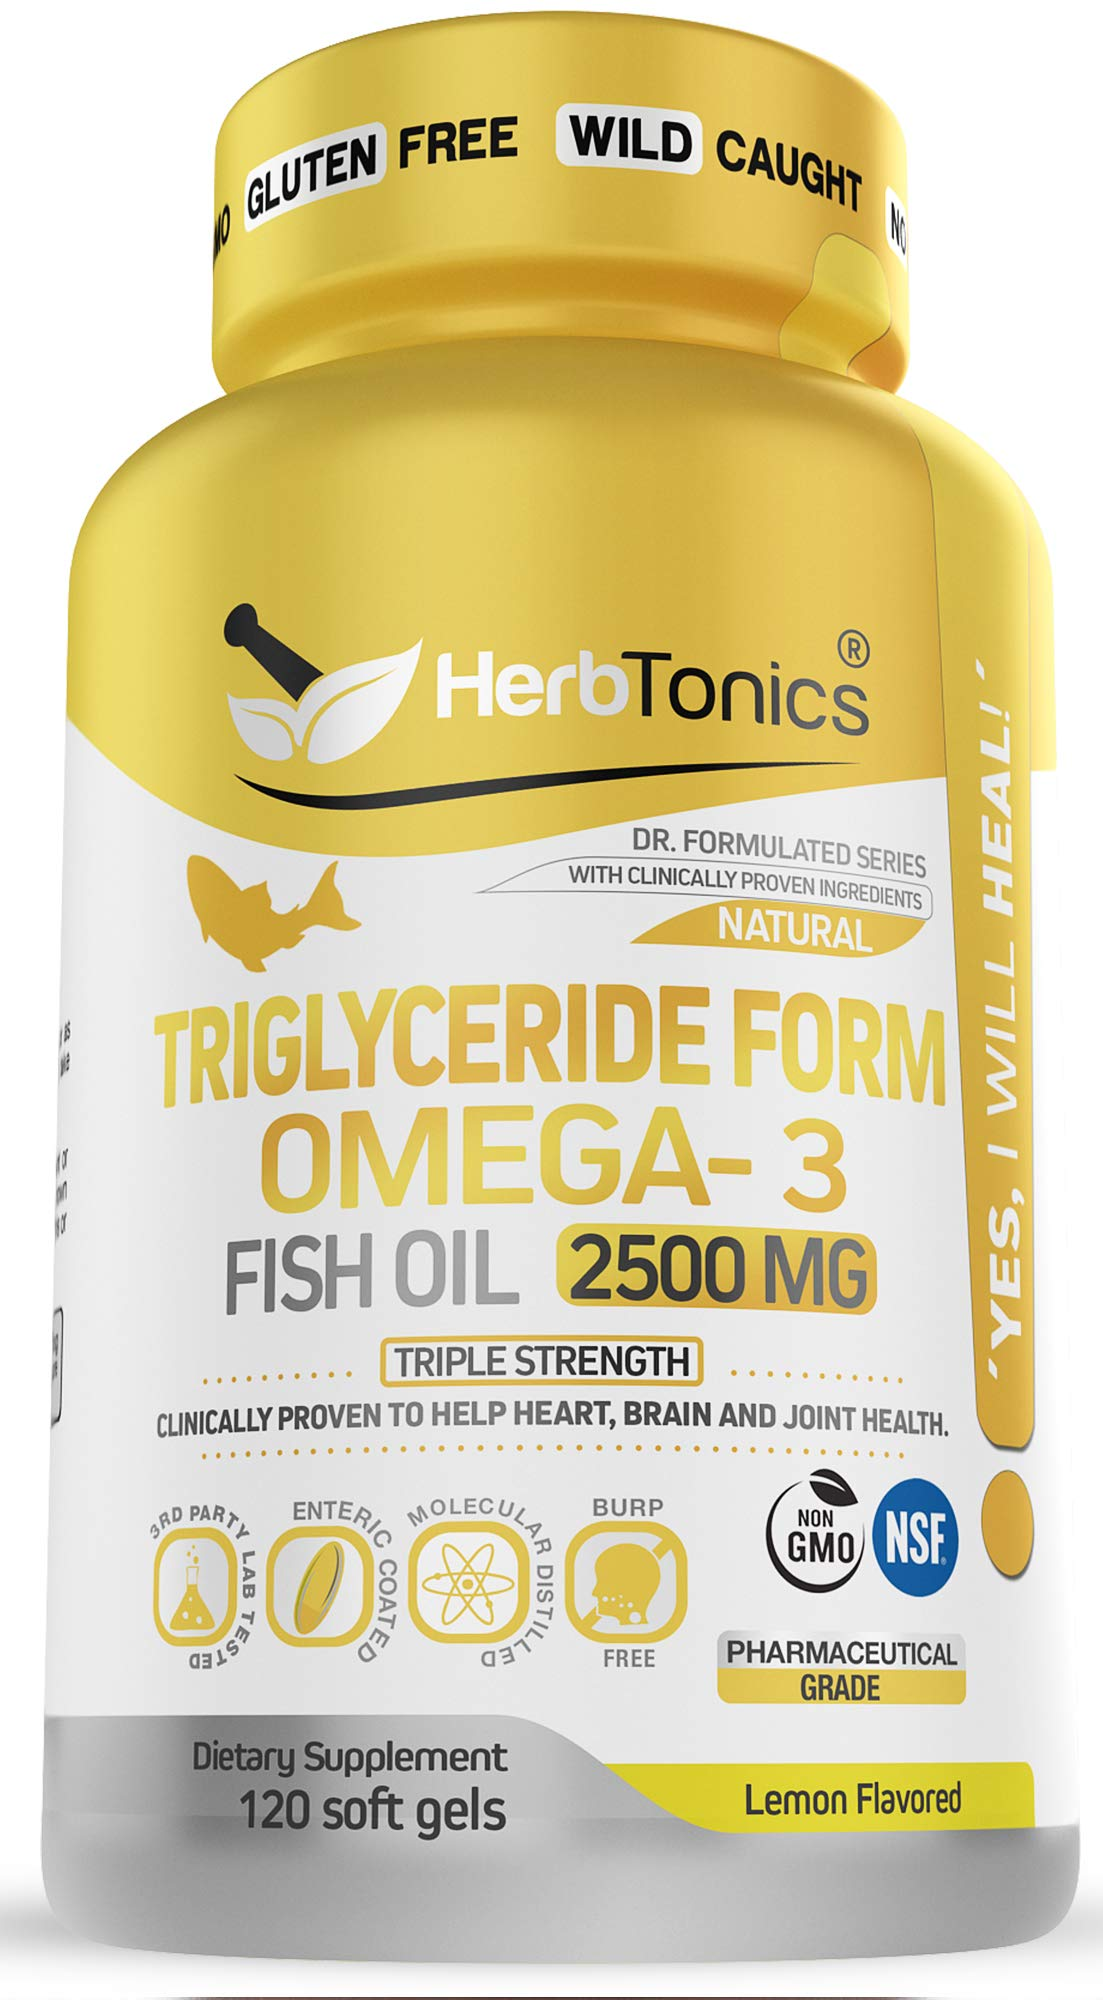 Triglyceride Omega 3 Fish Oil 2500 MG Triple Strength Burpless High EPA & DHA, NSF-Certified, 120 Soft Gel Capsules No Fishy After Taste - Heart, Joint and Brain Health